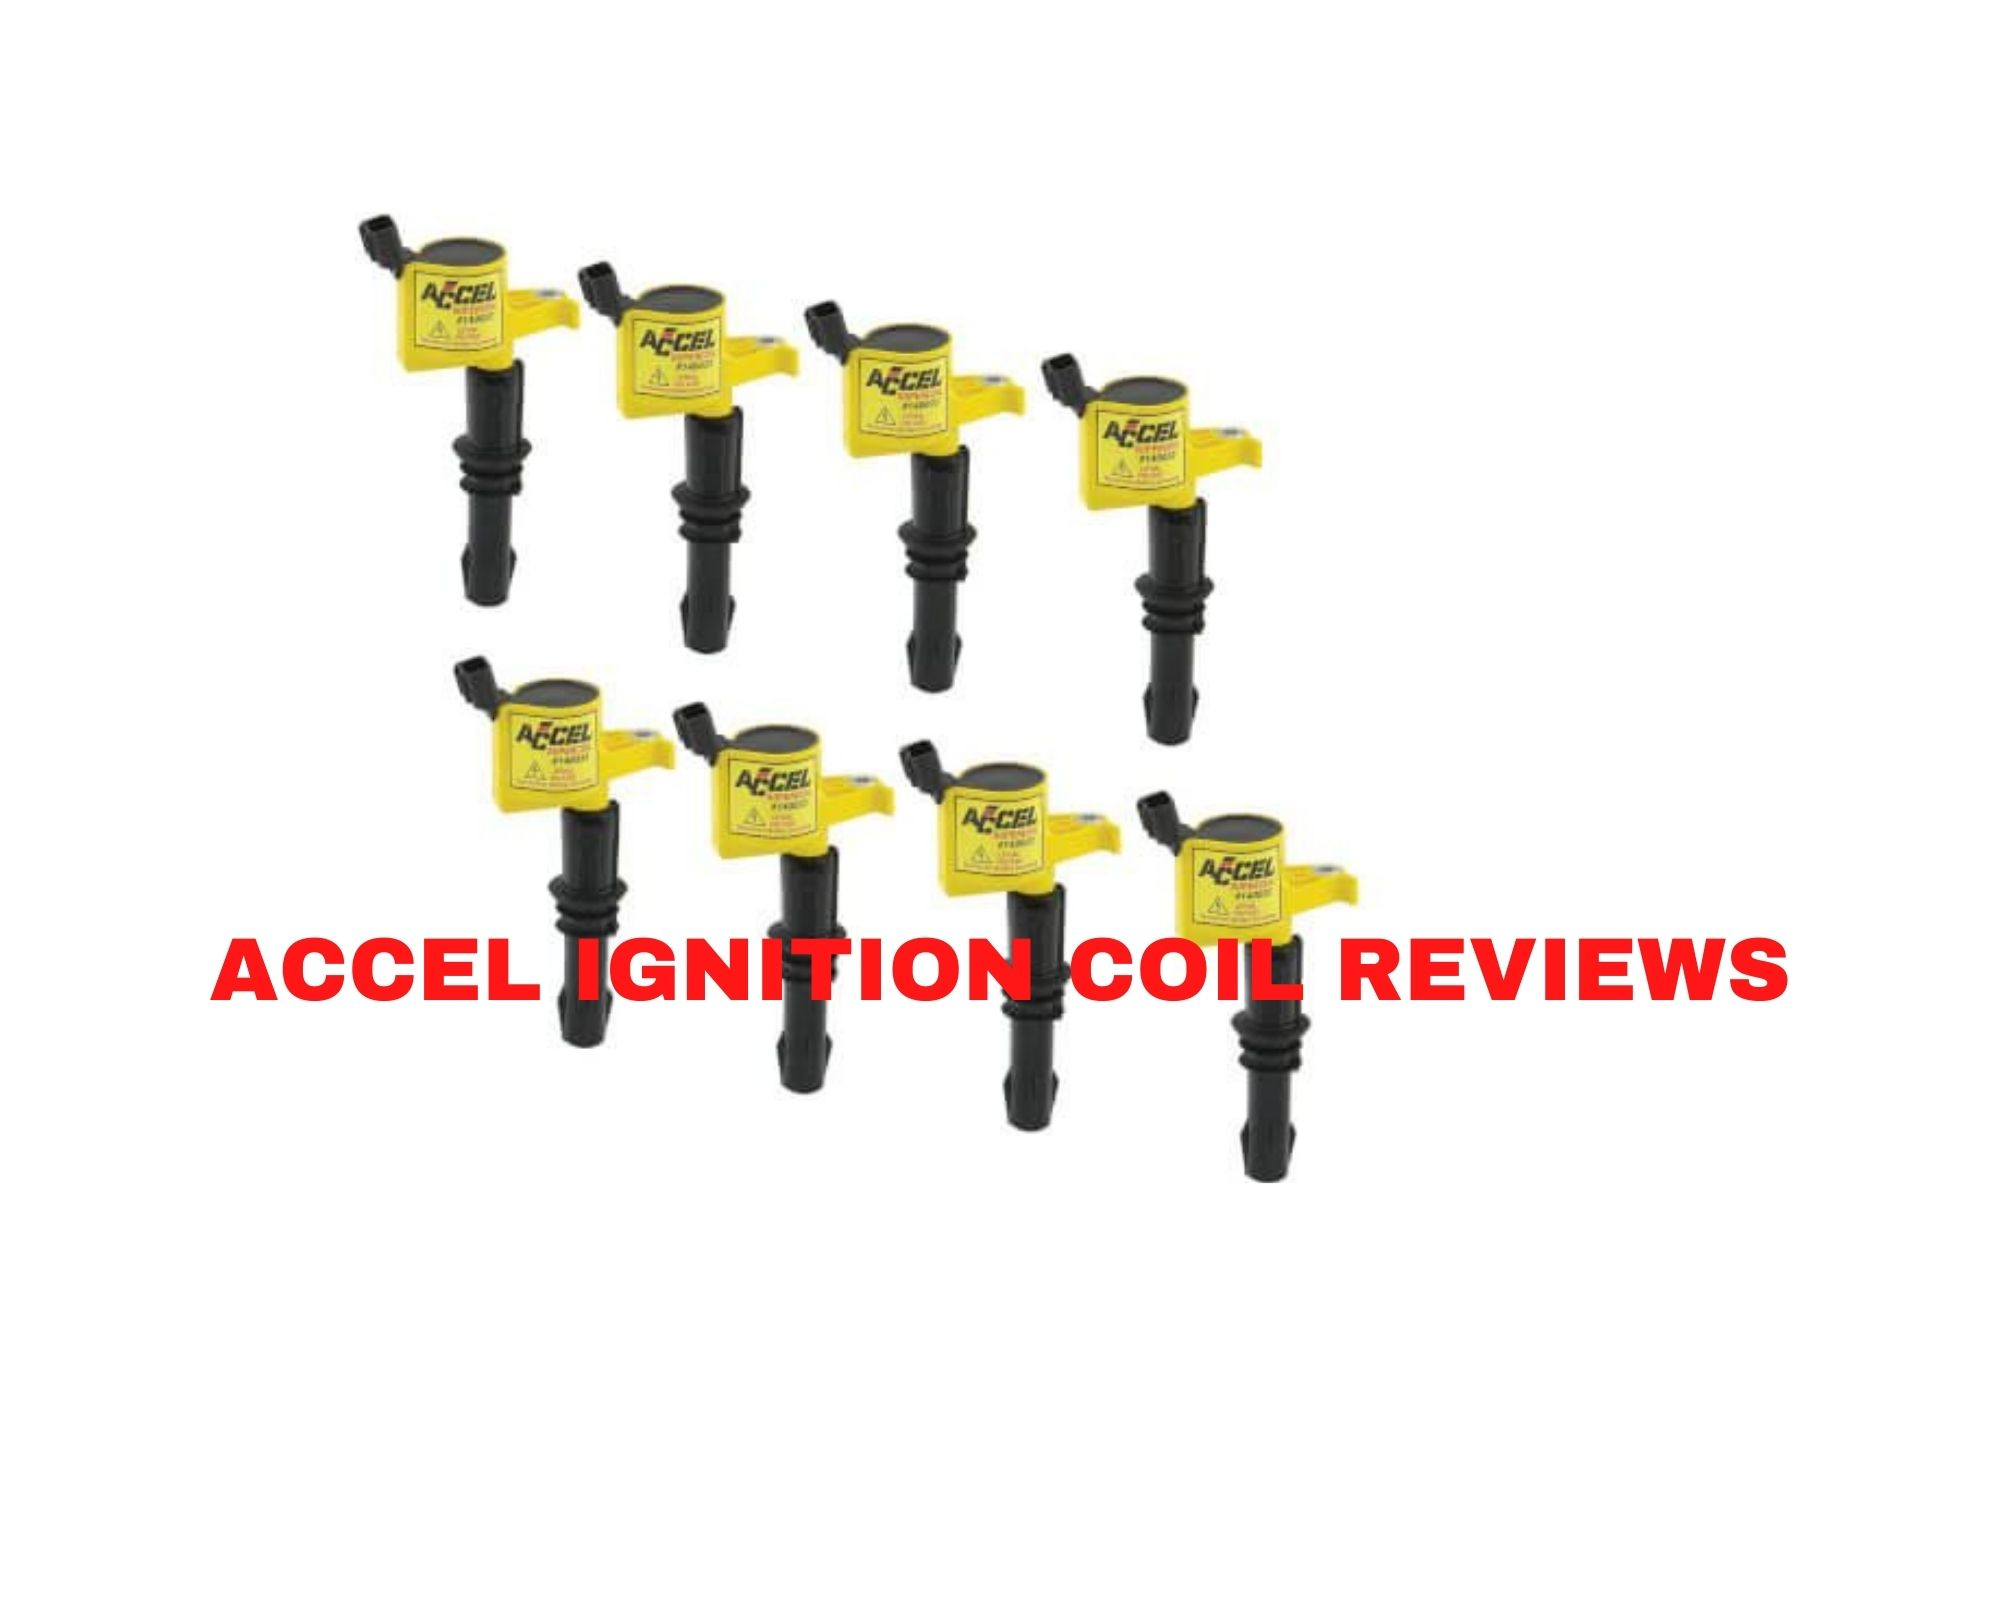 Accel Ignition Coil featured image